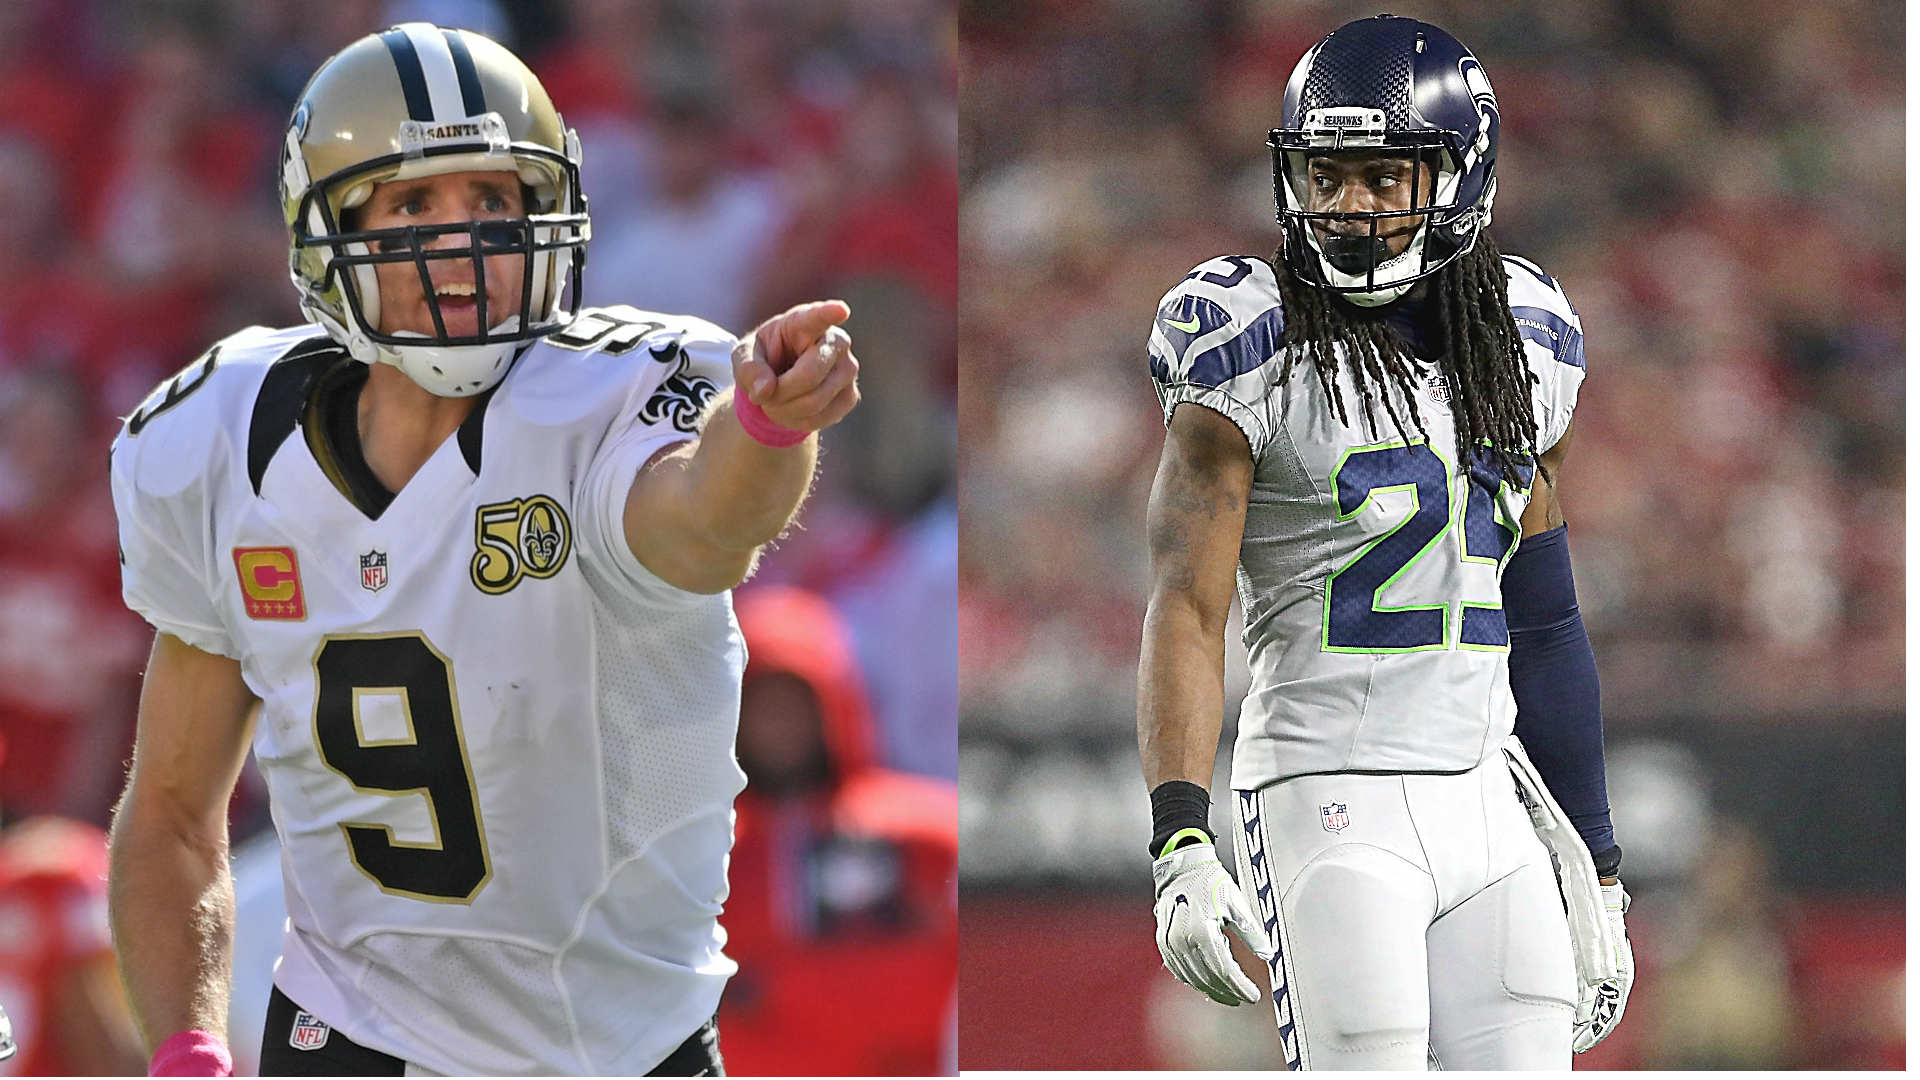 Brees-sherman-102816-usnews-getty-ftr_1qw016bnc5c9h1wrbia4pml5cl